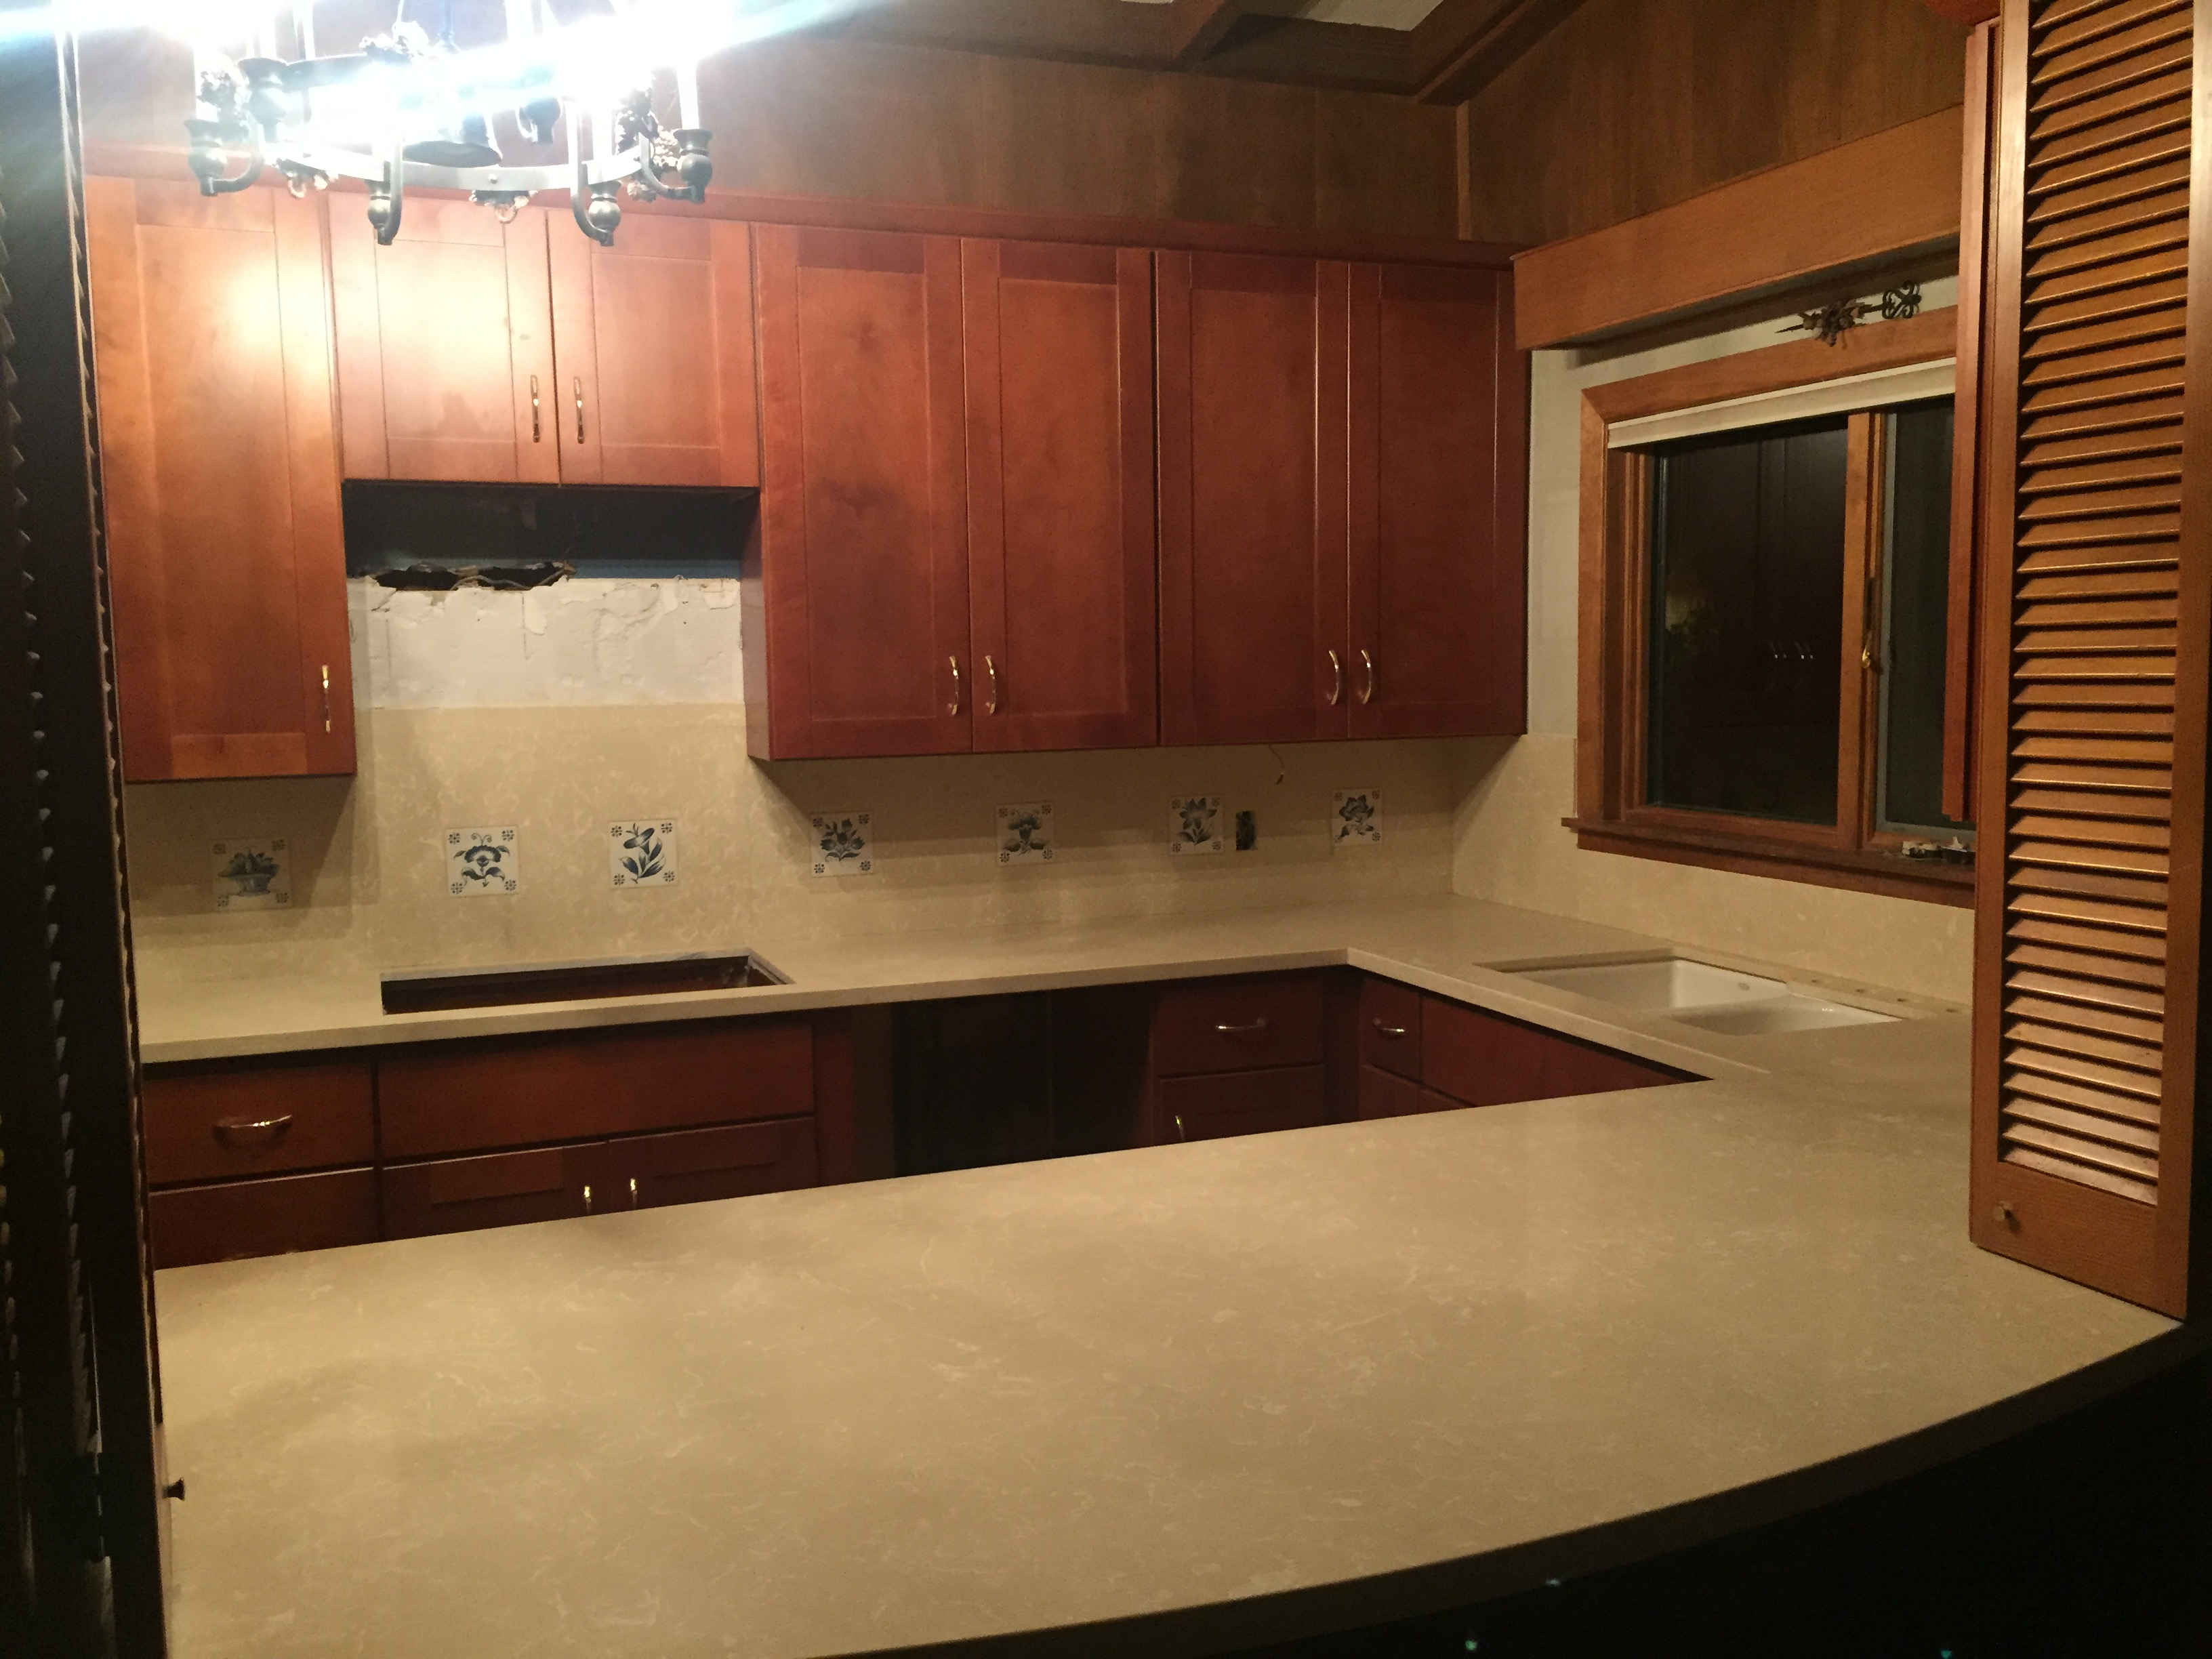 Kitchen With White Cabinets And Quartz Counter Tops Kitchen Cinnamon Shaker Cabinets & Crema Marfil Quartz